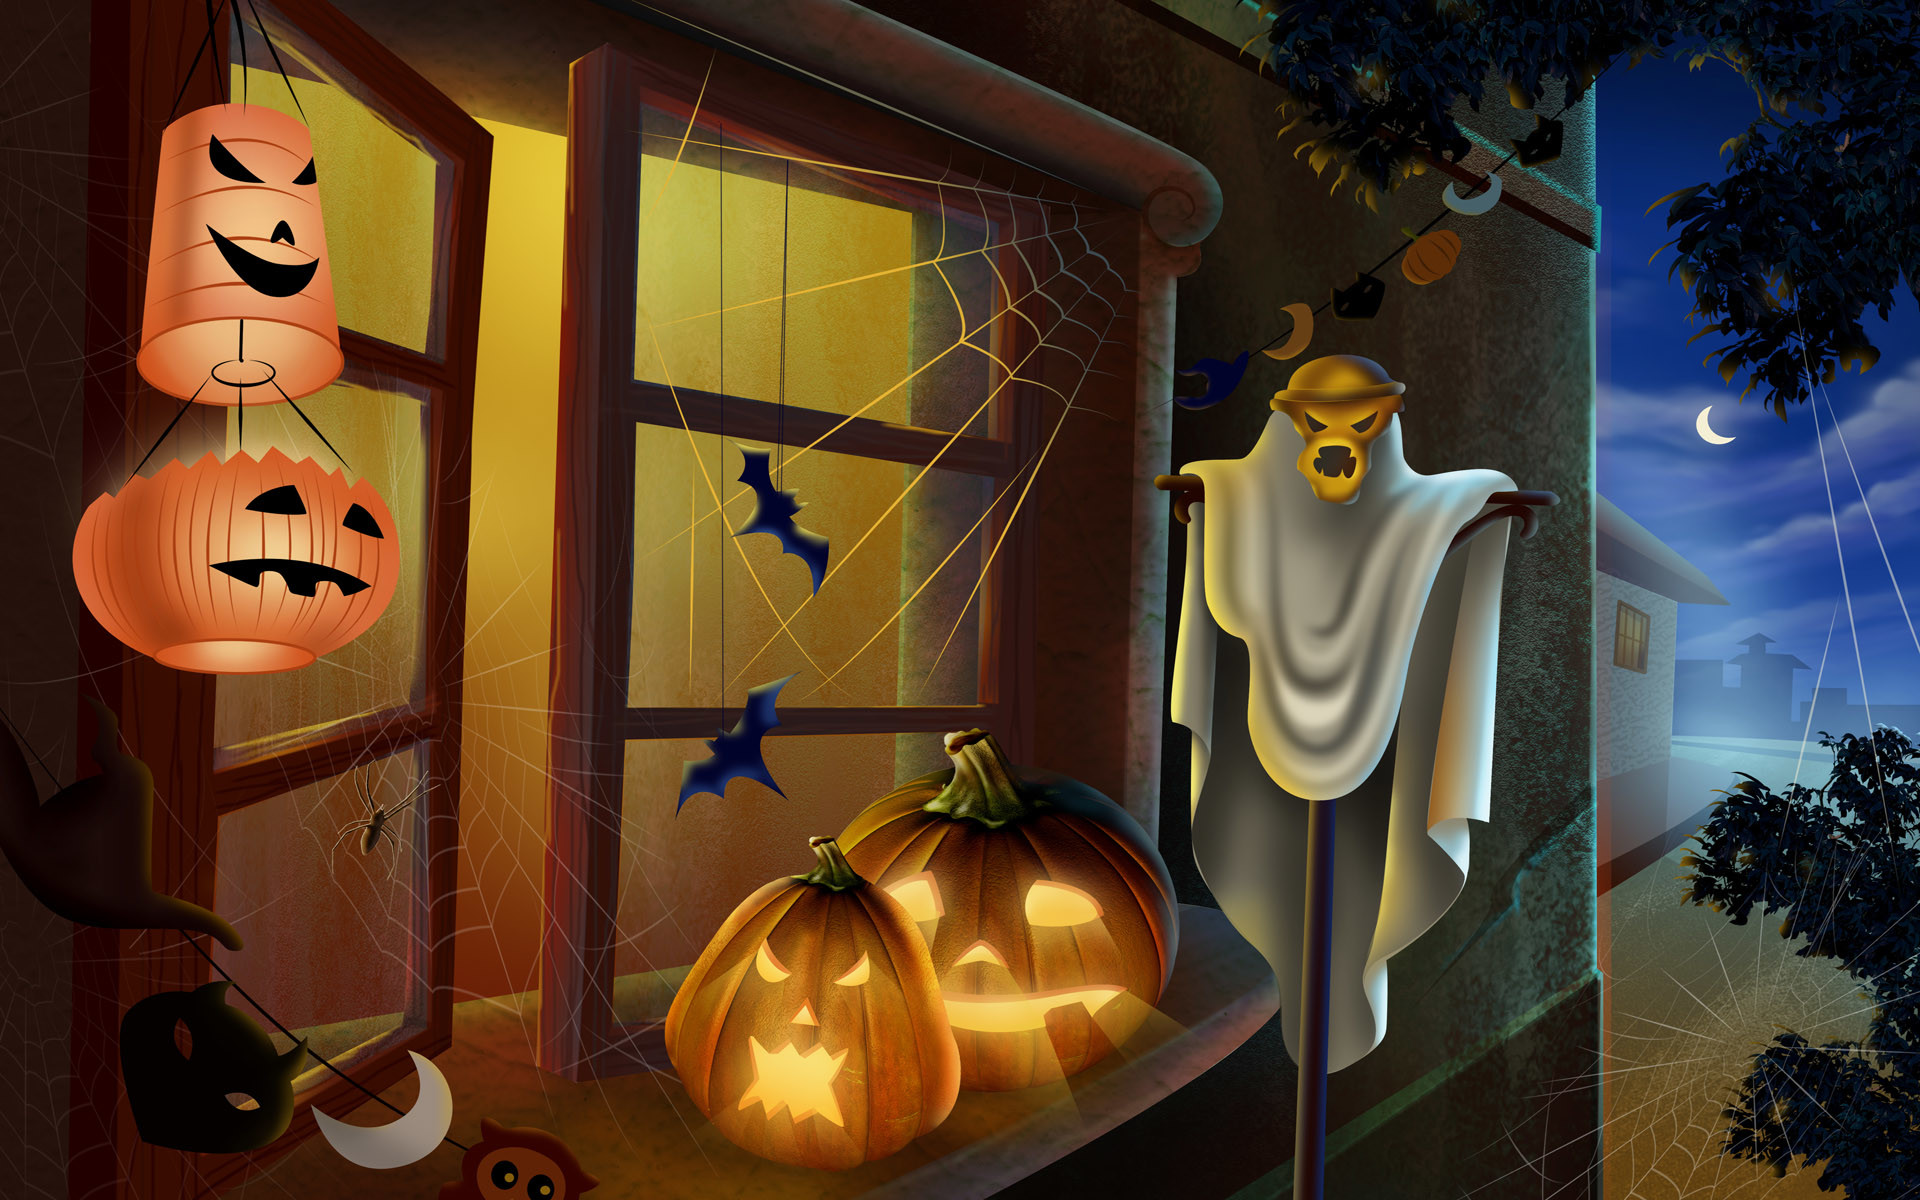 Scary Halloween 2012 HD Wallpapers | Pumpkins, Witches, Spider Web .